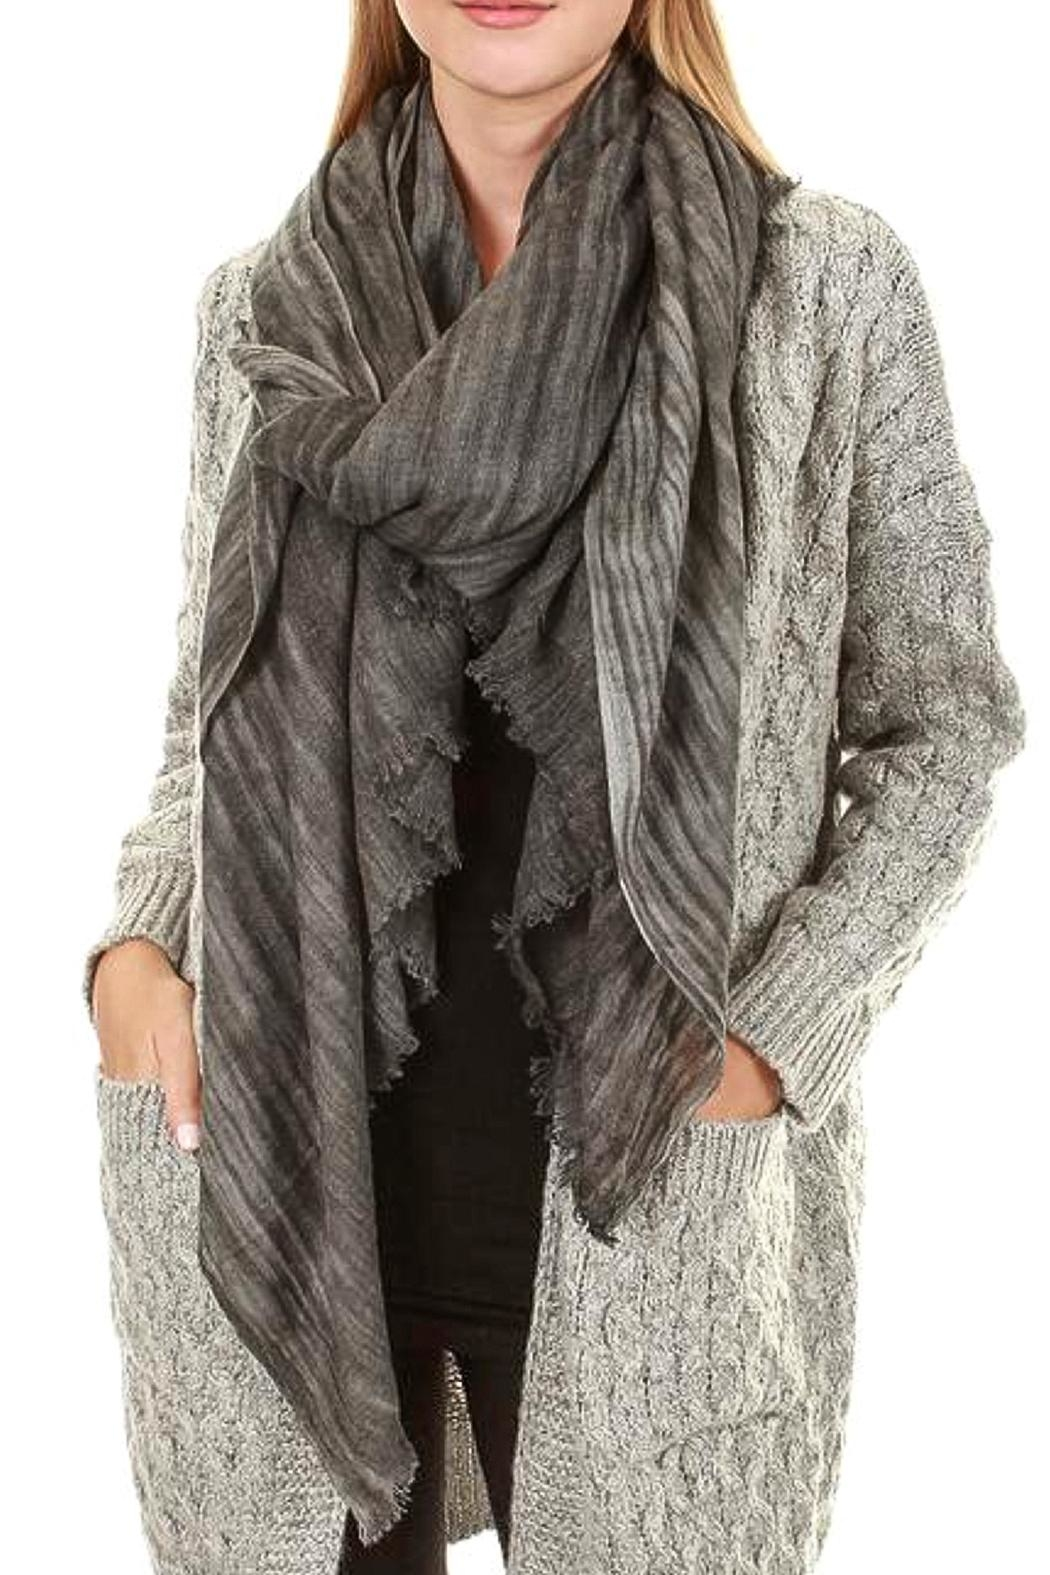 TIGERLILY Stripe Cashmere Scarf - Main Image